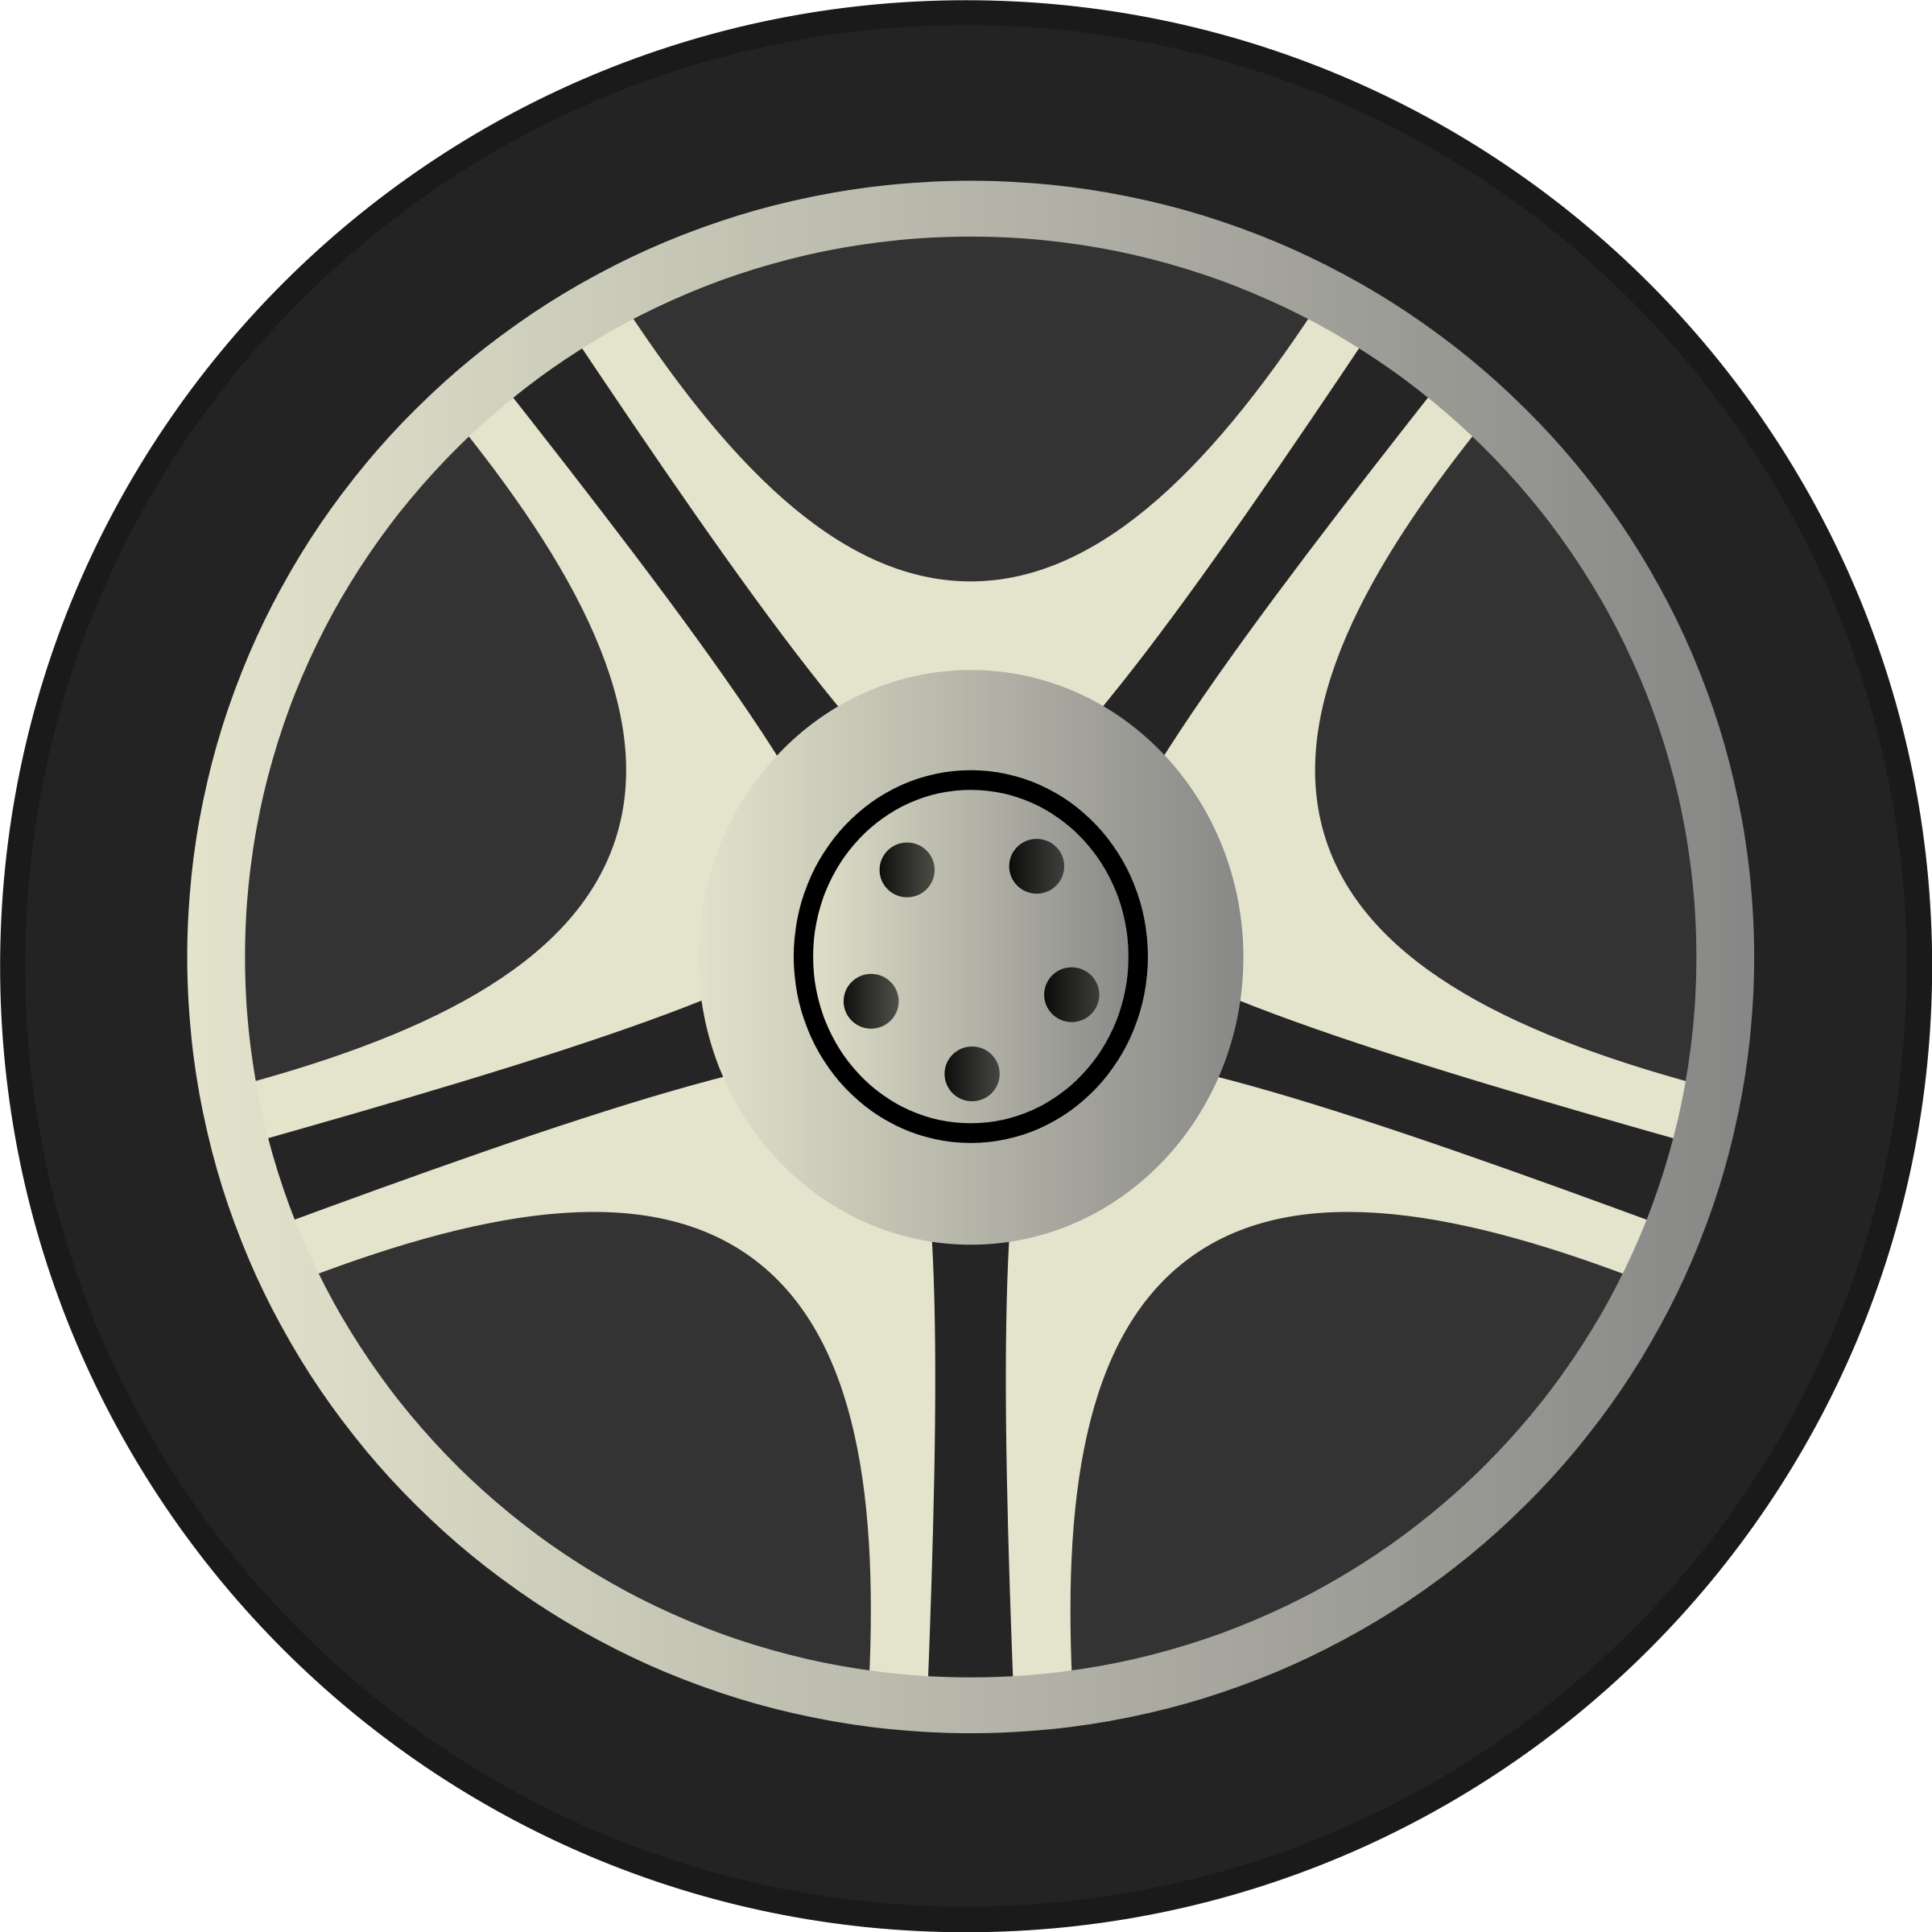 Wheel clipart #5, Download drawings